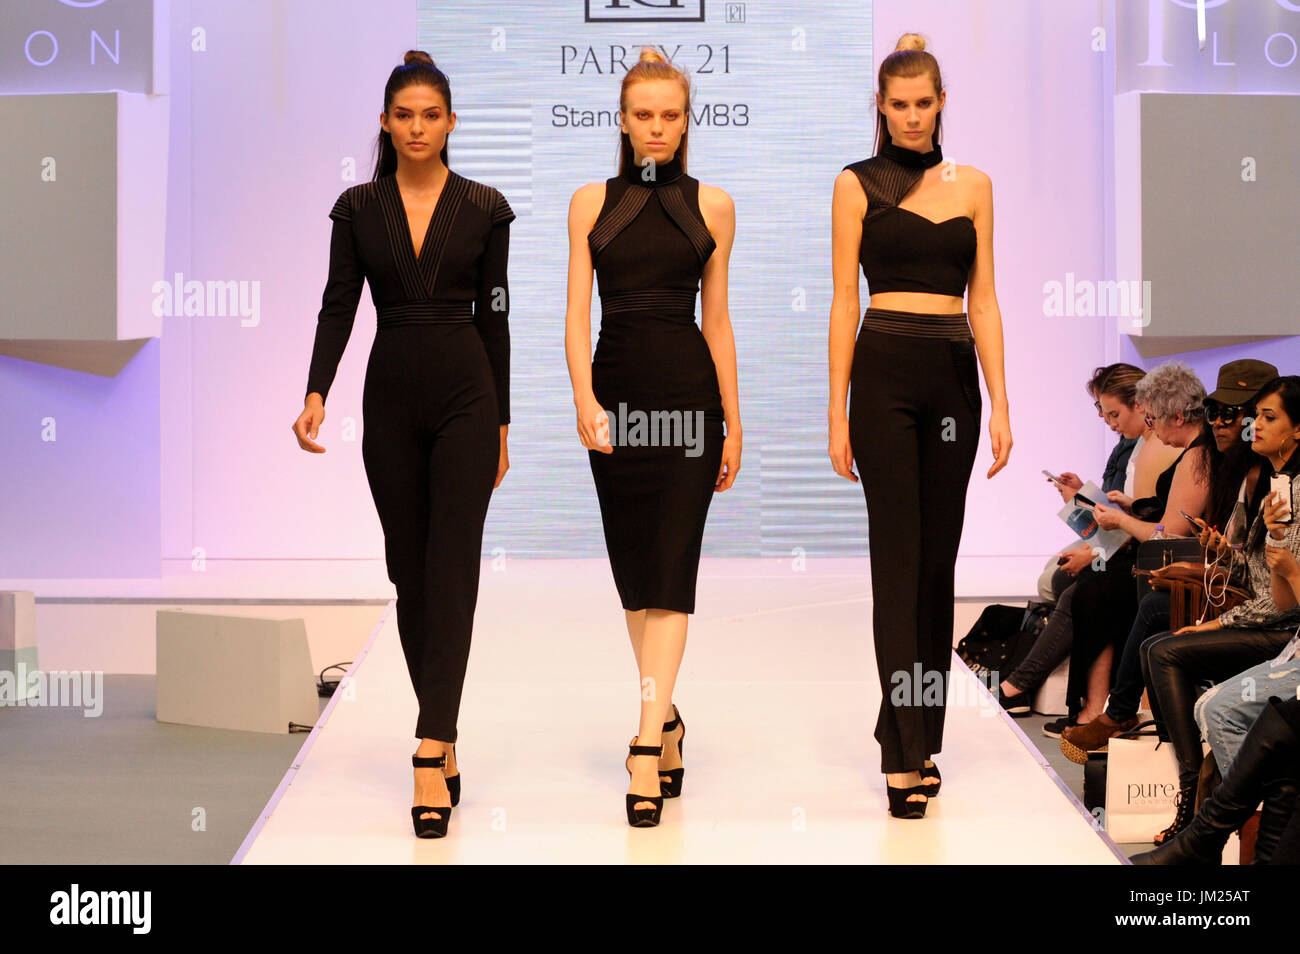 b79ad60d5 Fashion models wearing clothes by Party 21 on the Spirit Catwalk at Pure  London